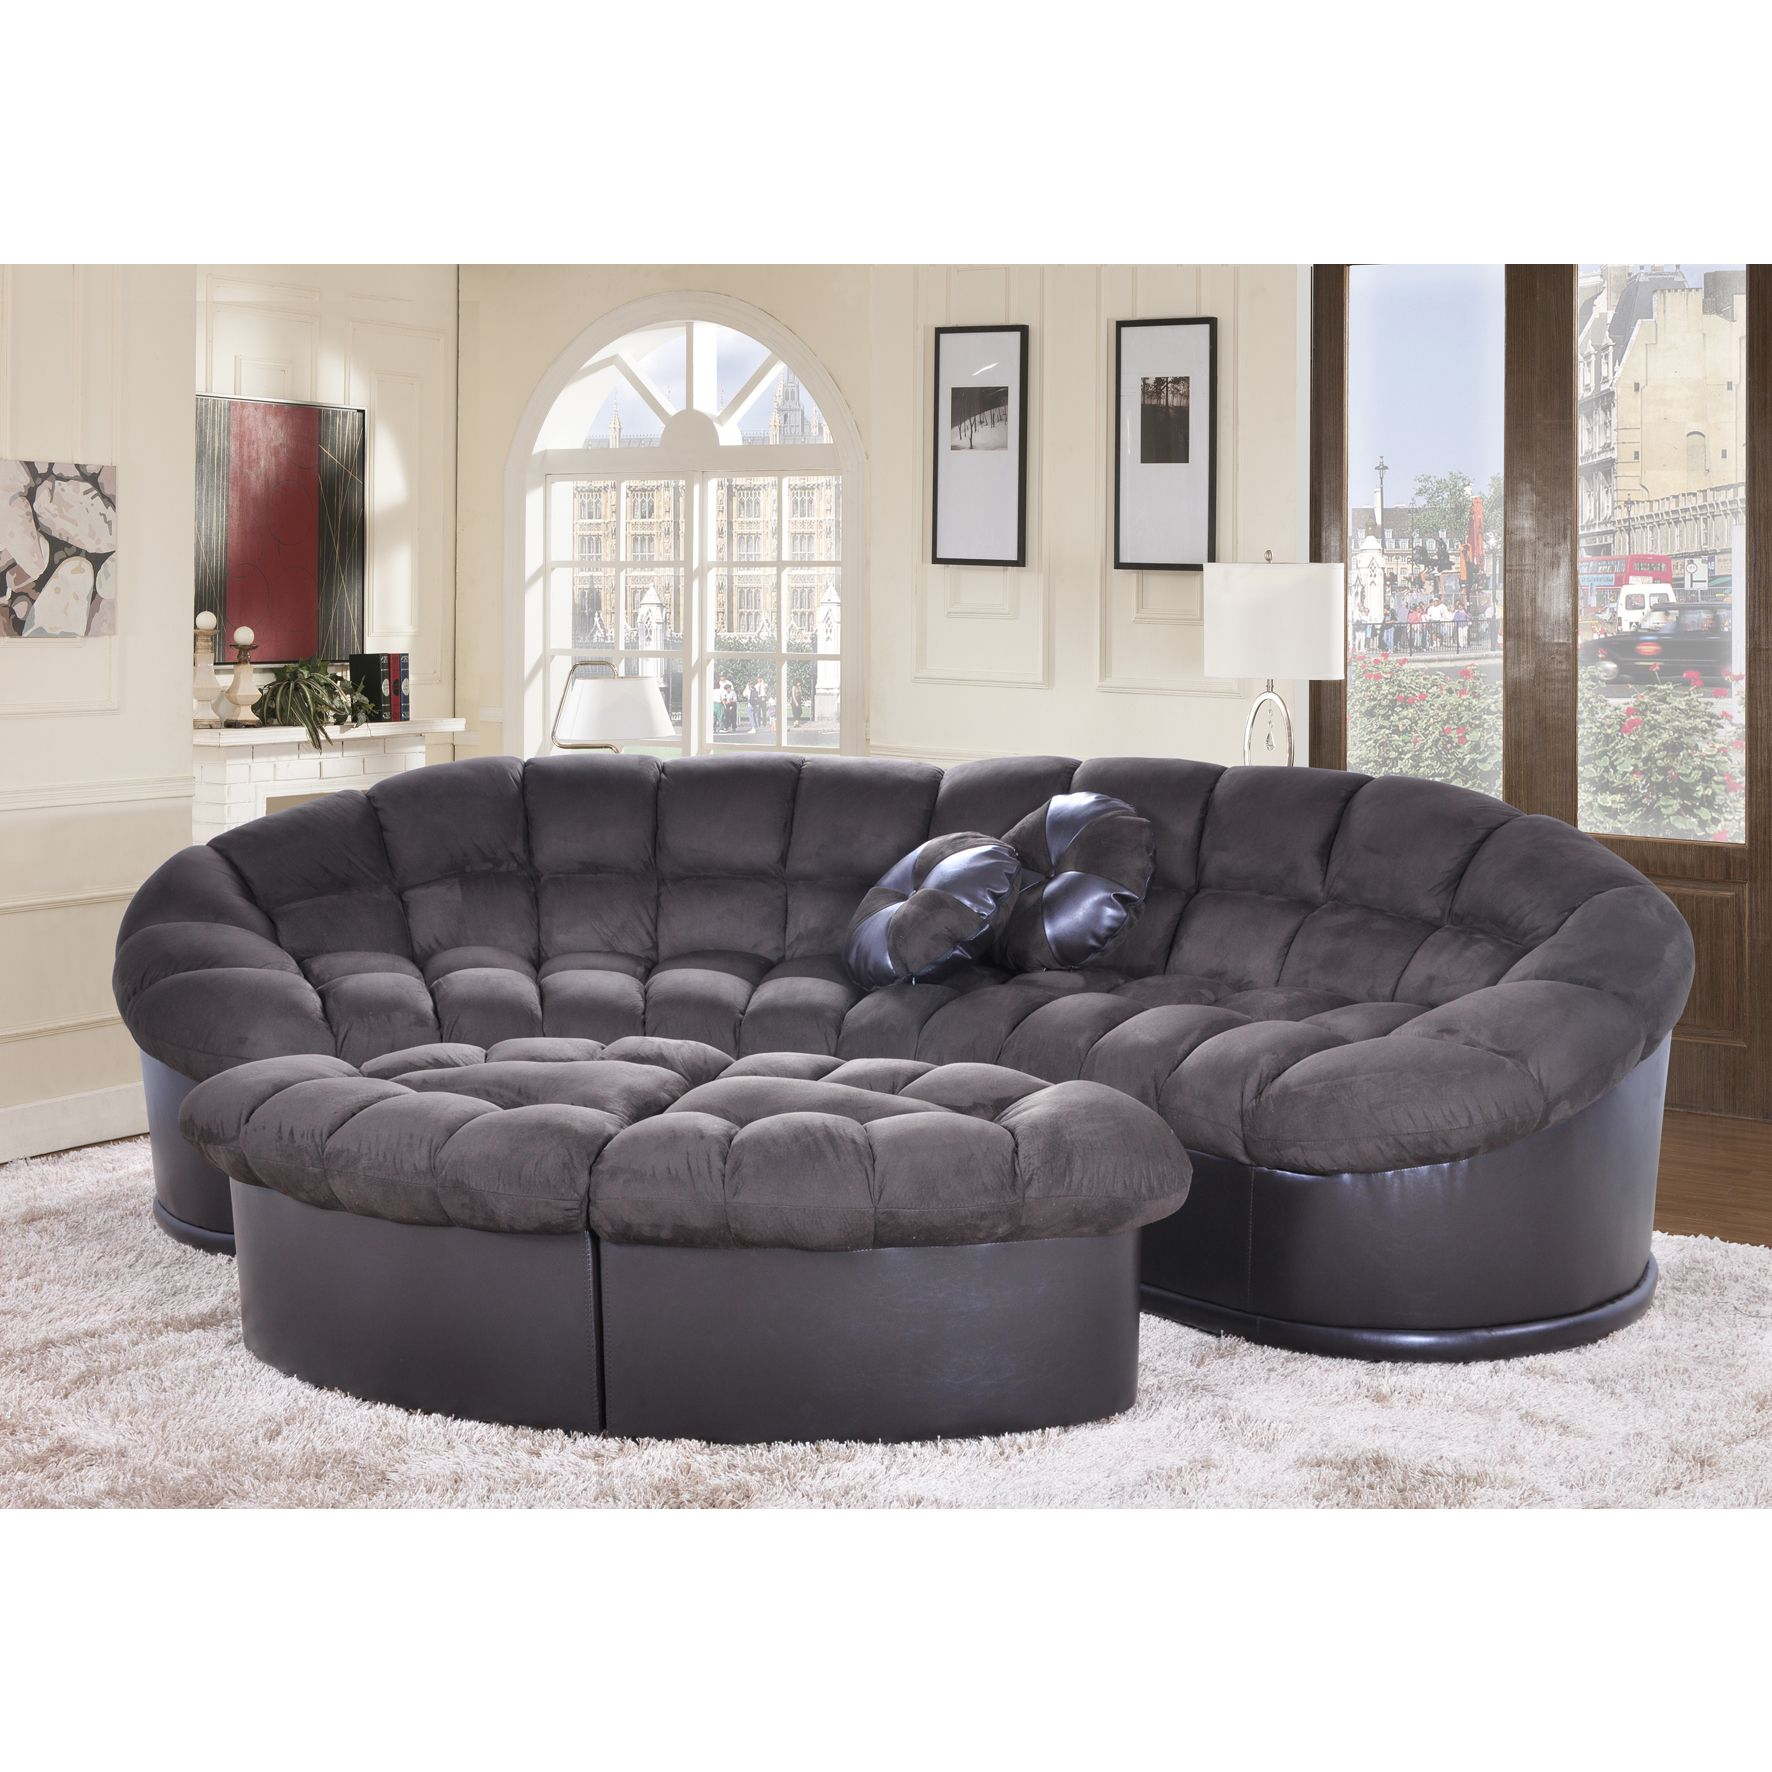 steffi wayfair pdx sectional double ellis furniture dual orren chaise